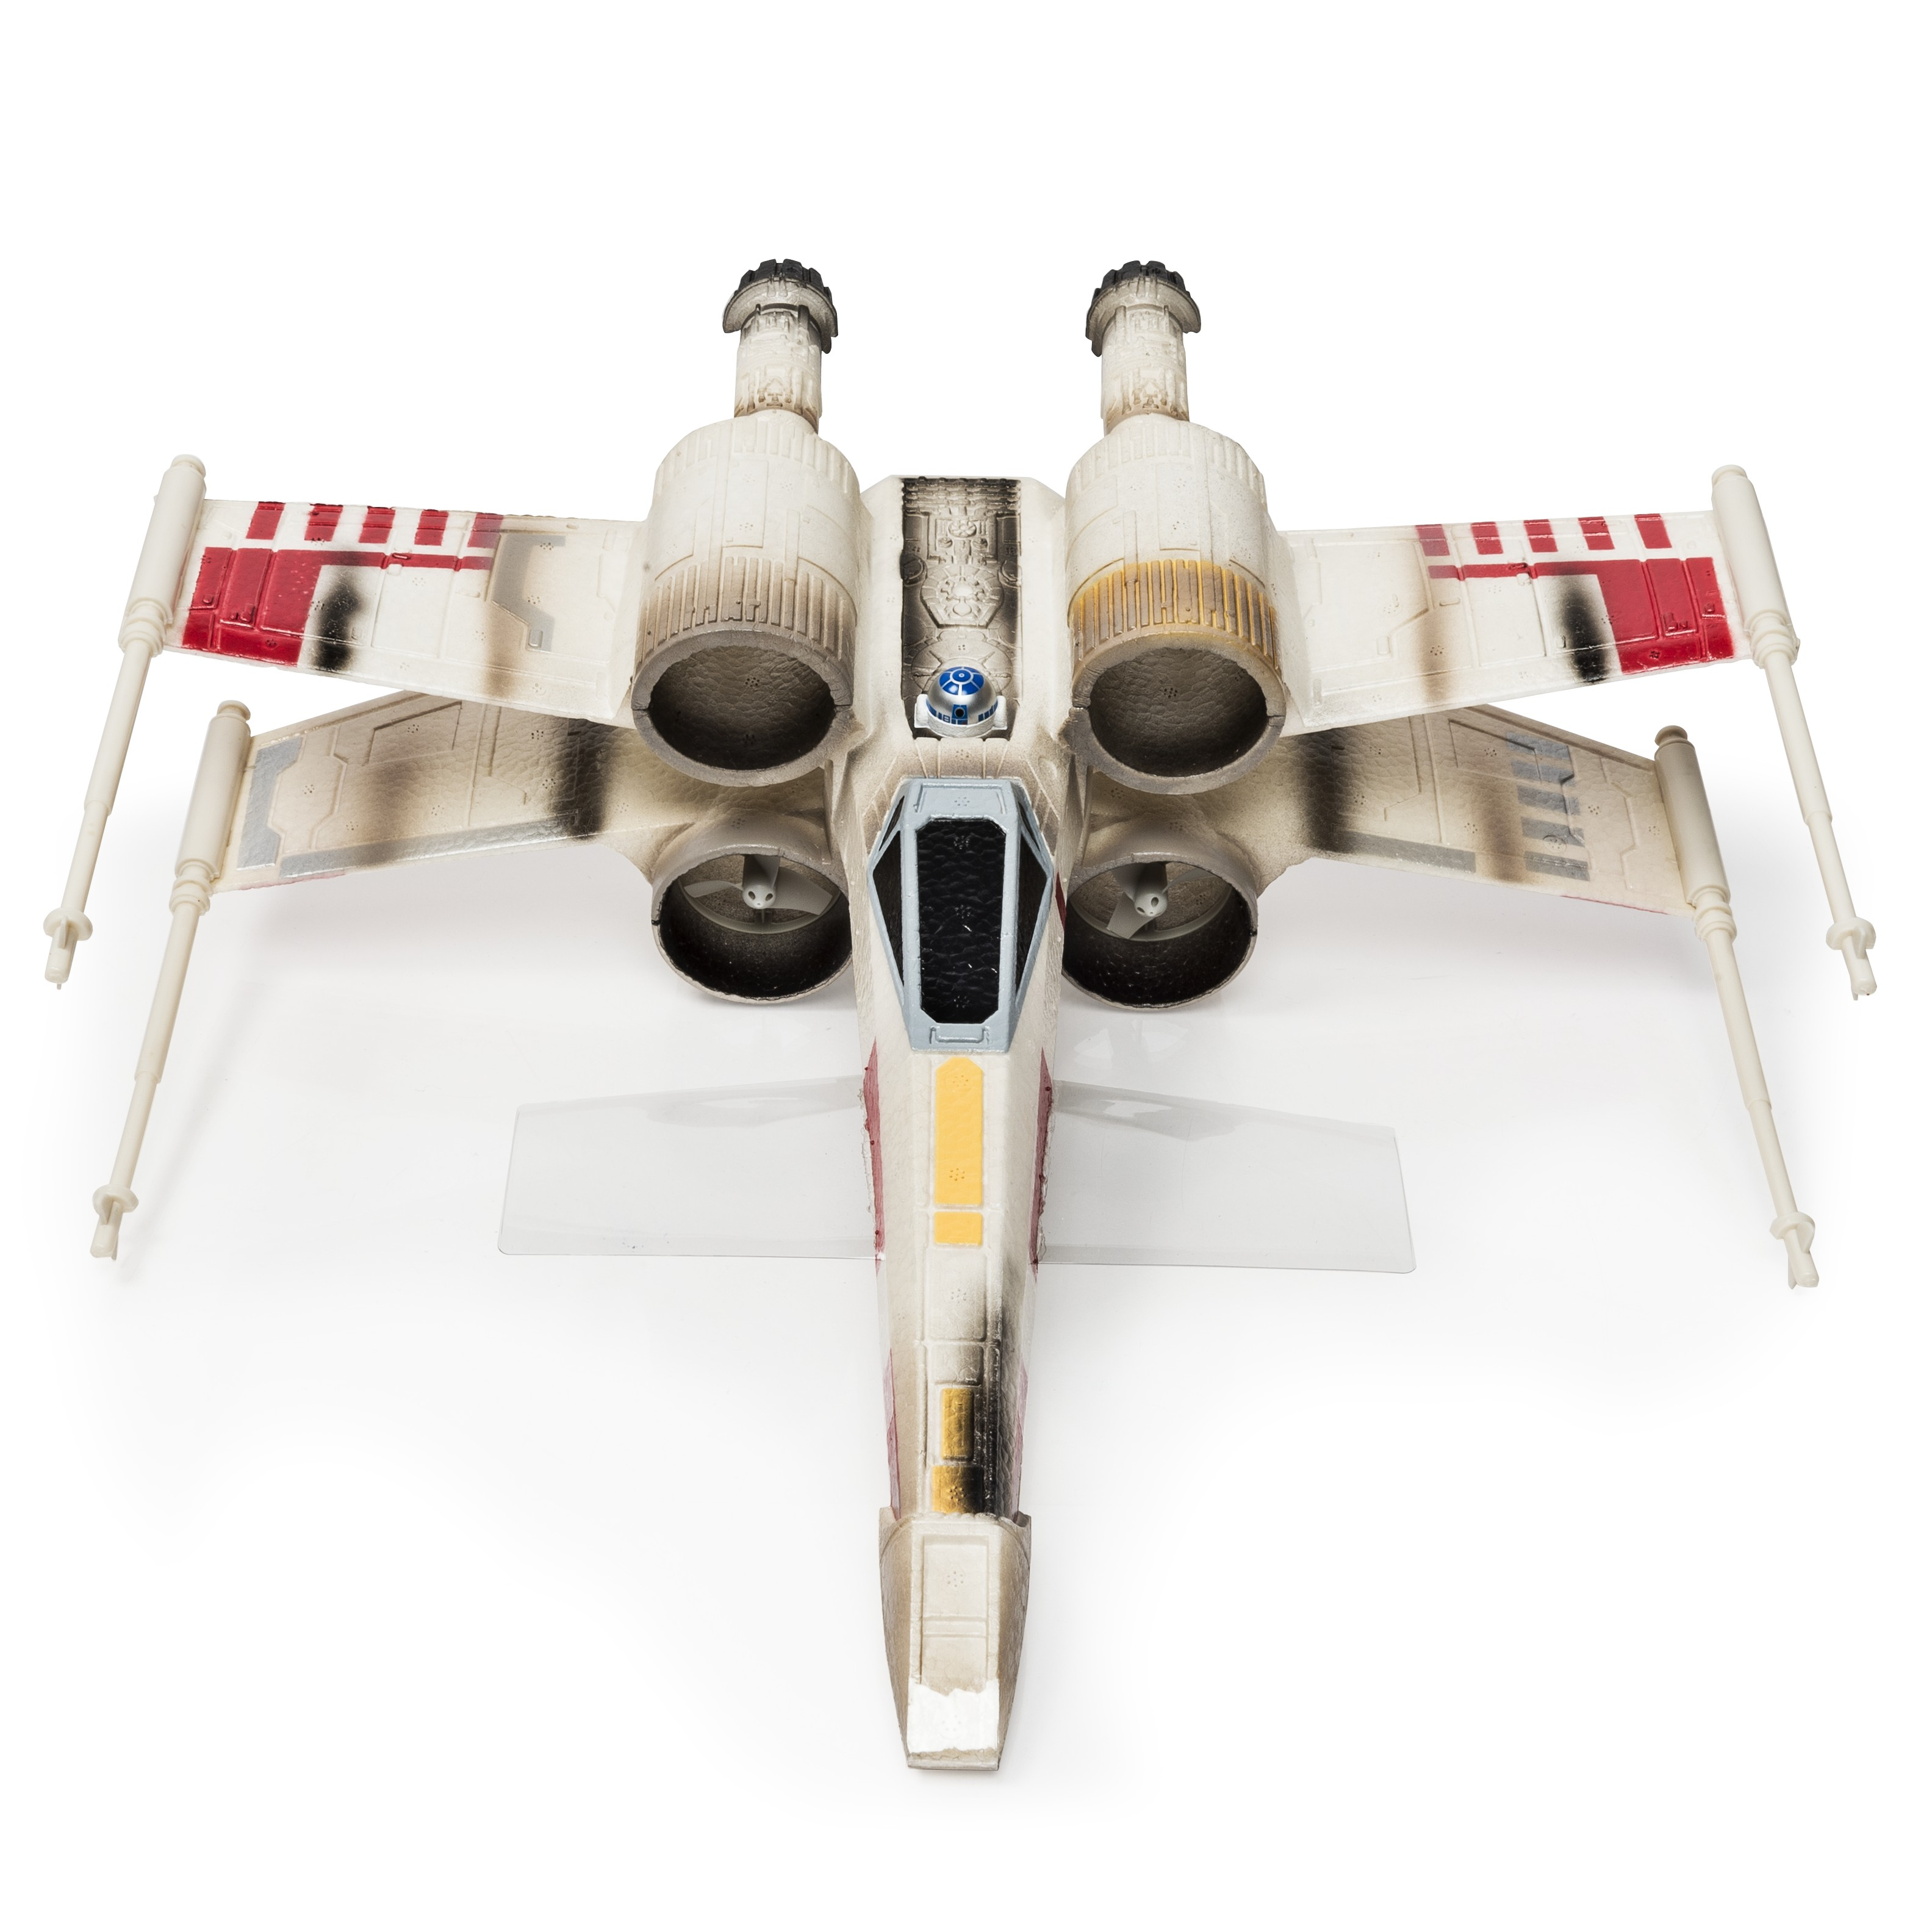 Remote-controlled X-Wing Starfighter